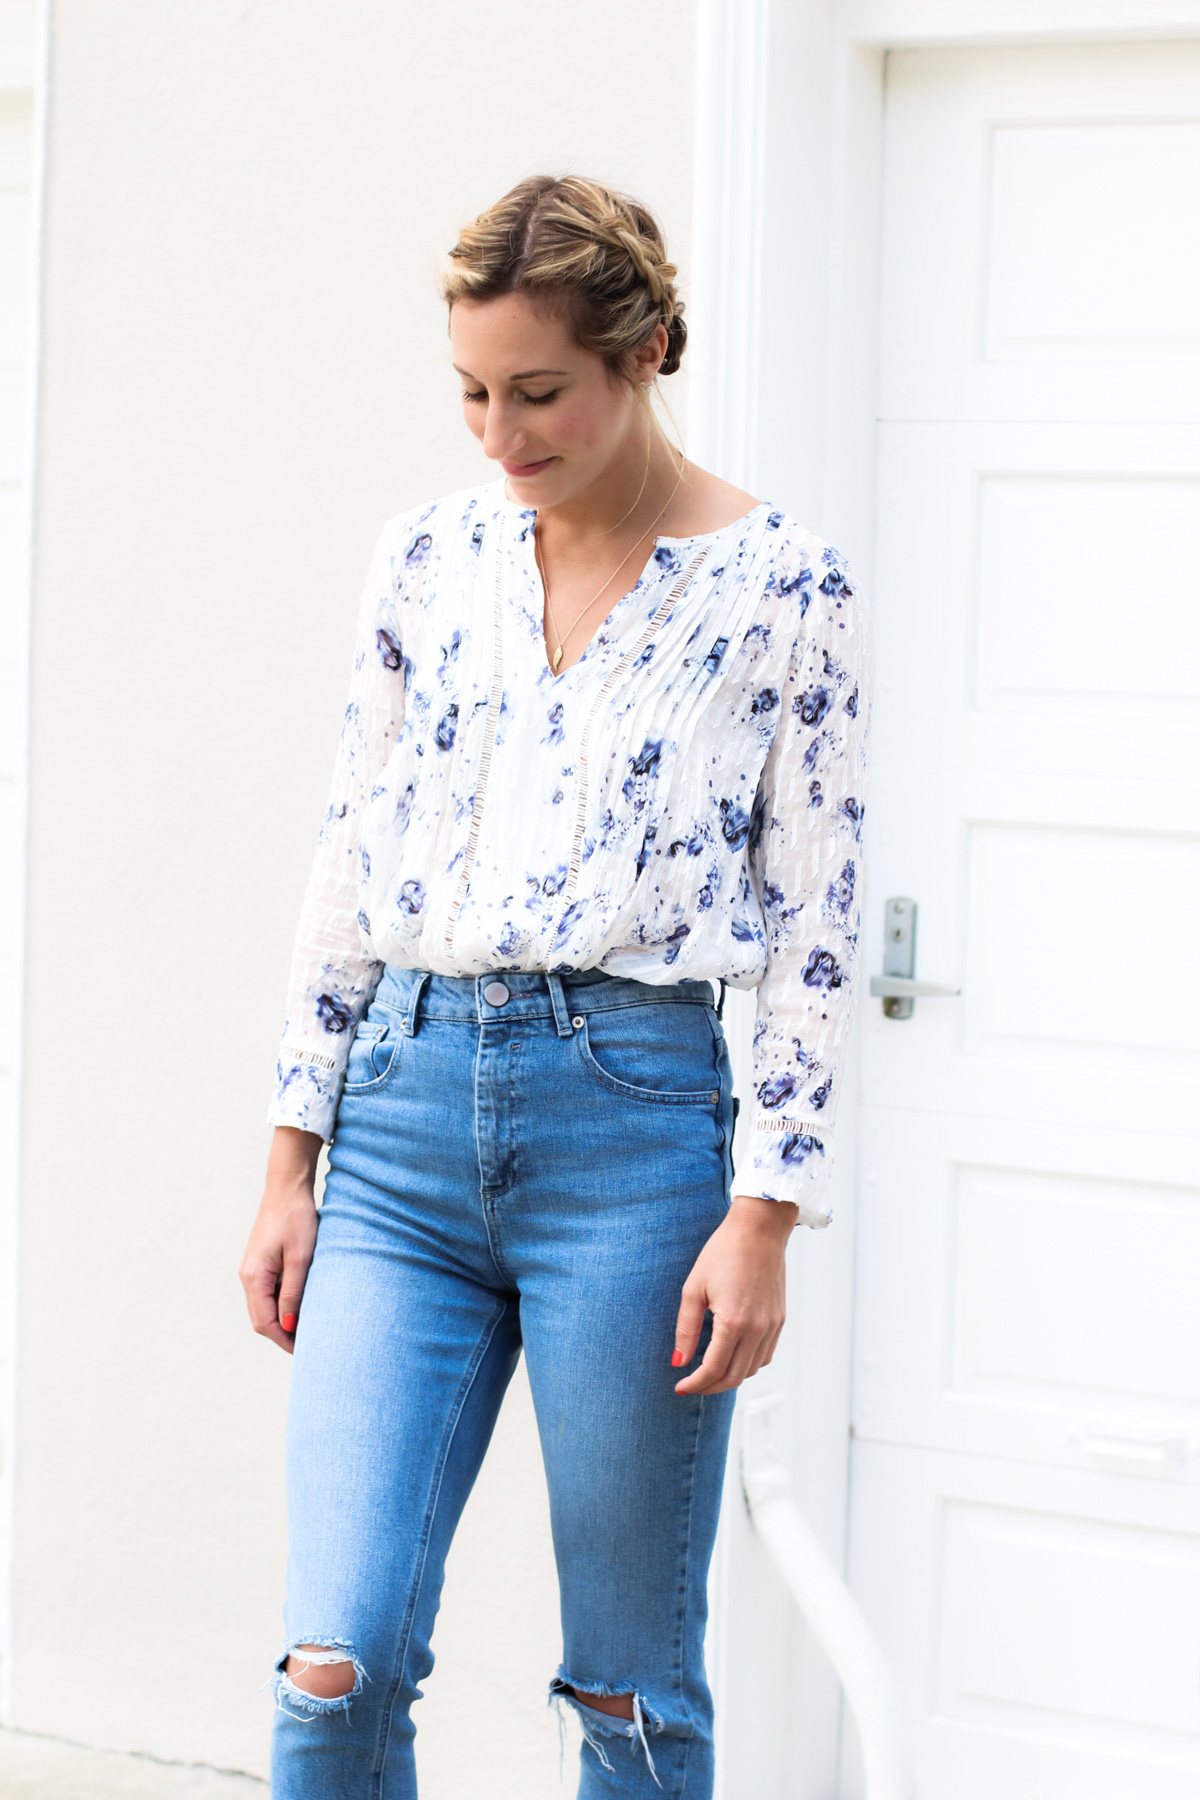 asos mom jeans and rebecca taylor floral print top